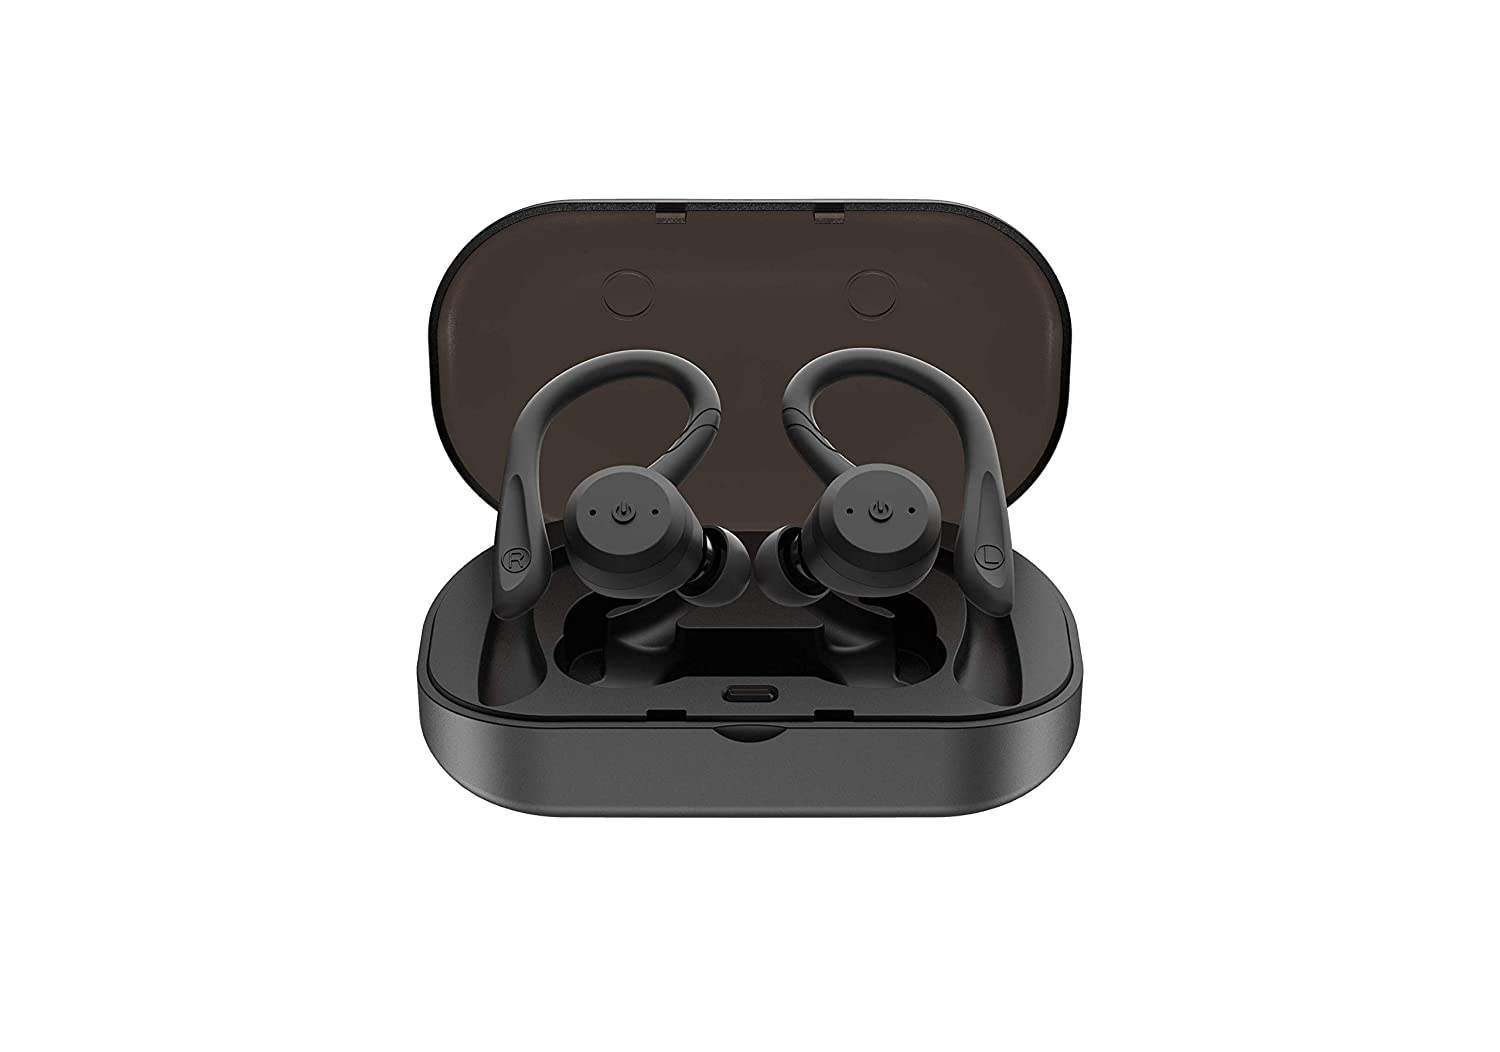 True Wireless Earbuds Bluetooth 5.0 Headphones with Mic HiFi Bass IPX7 Waterproof TWS Stereo Headsets Noise Cancelling Earphones up to 15 Hours with Battery Charging Case Black